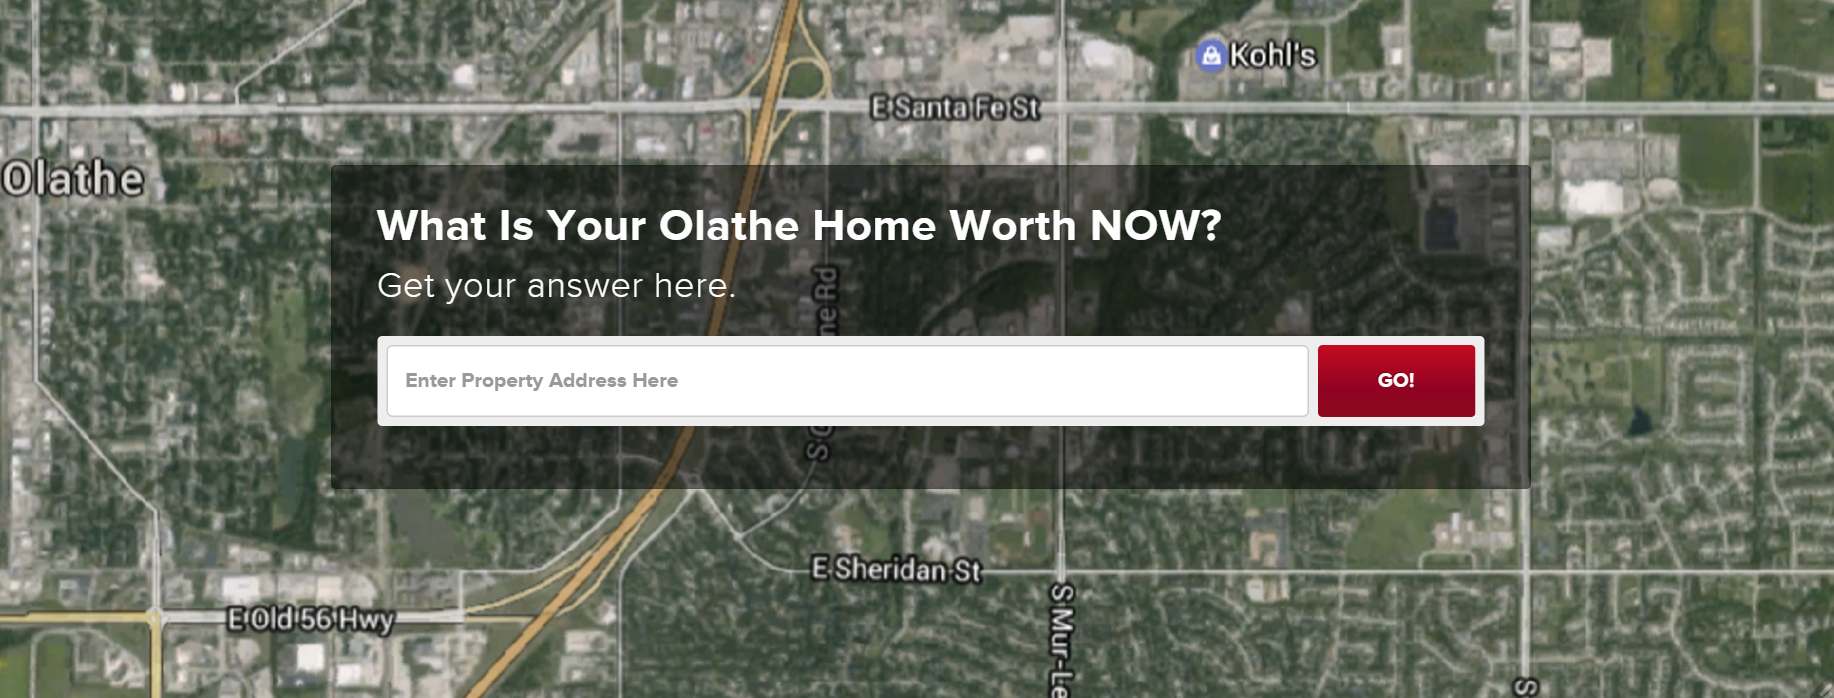 Find out the value of your home in Olathe KS